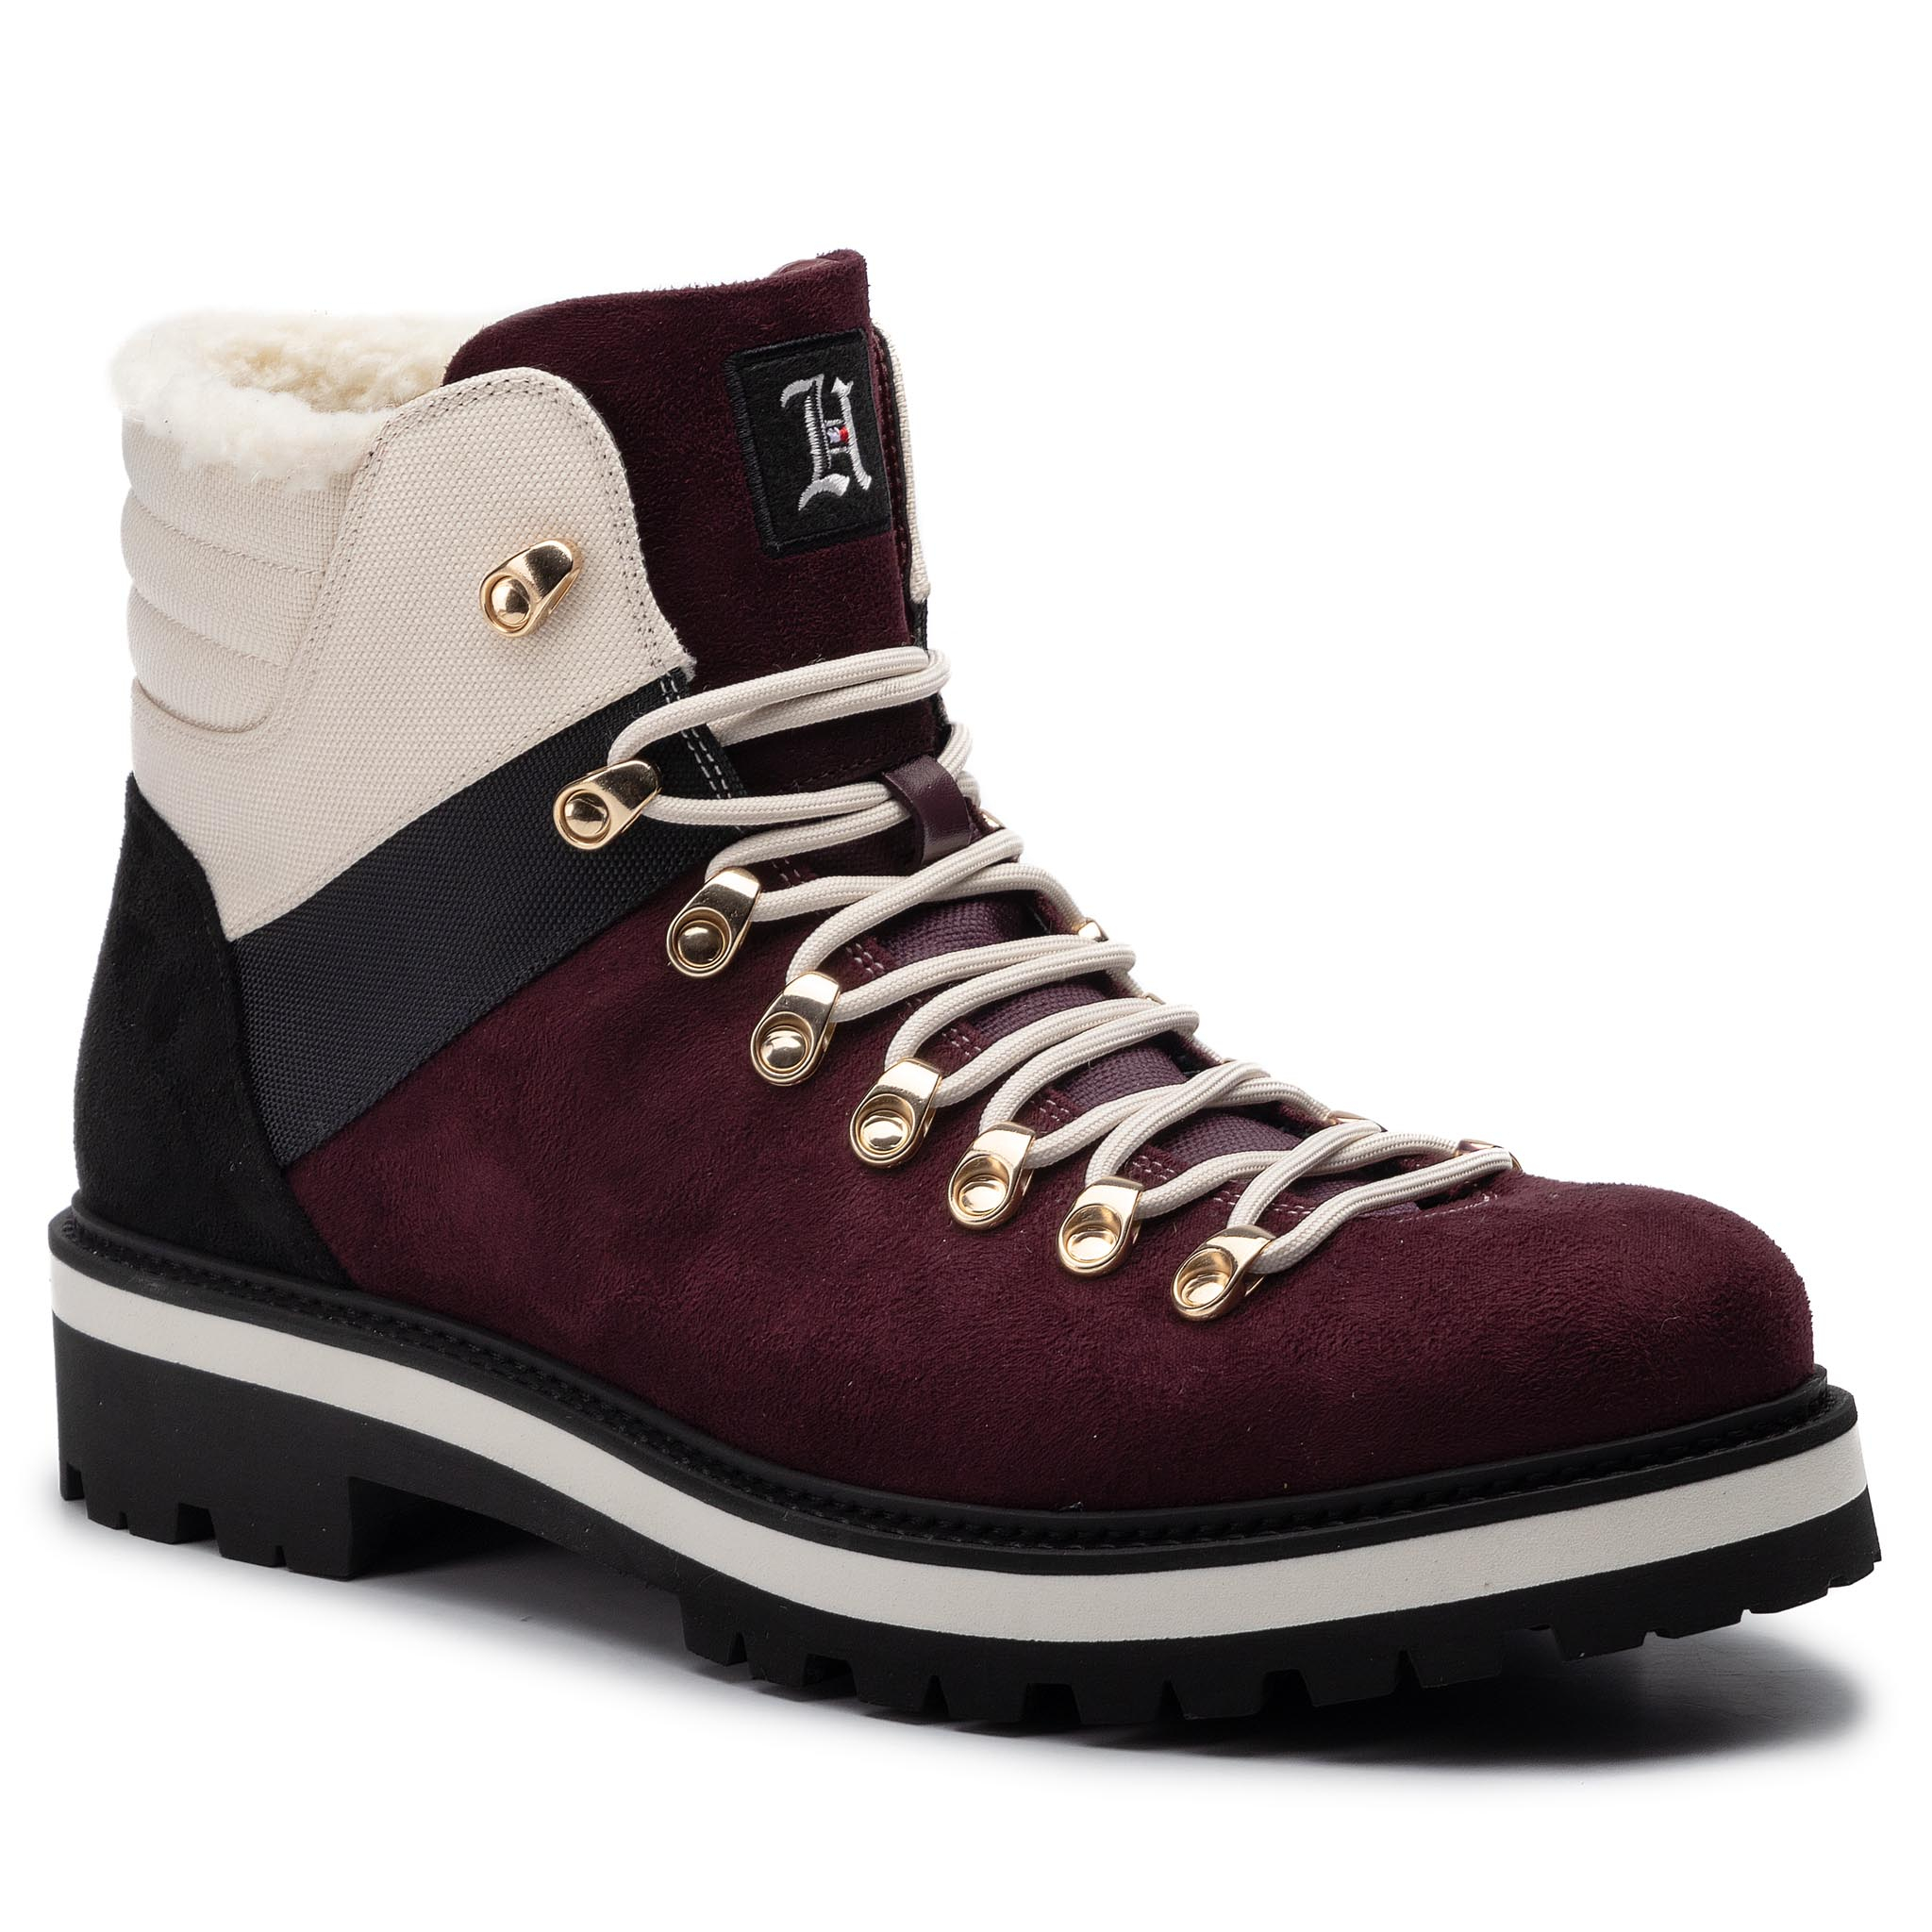 Trappers TOMMY HILFIGER - Lh Expedition Trail Boot FM0FM02526 Ghb